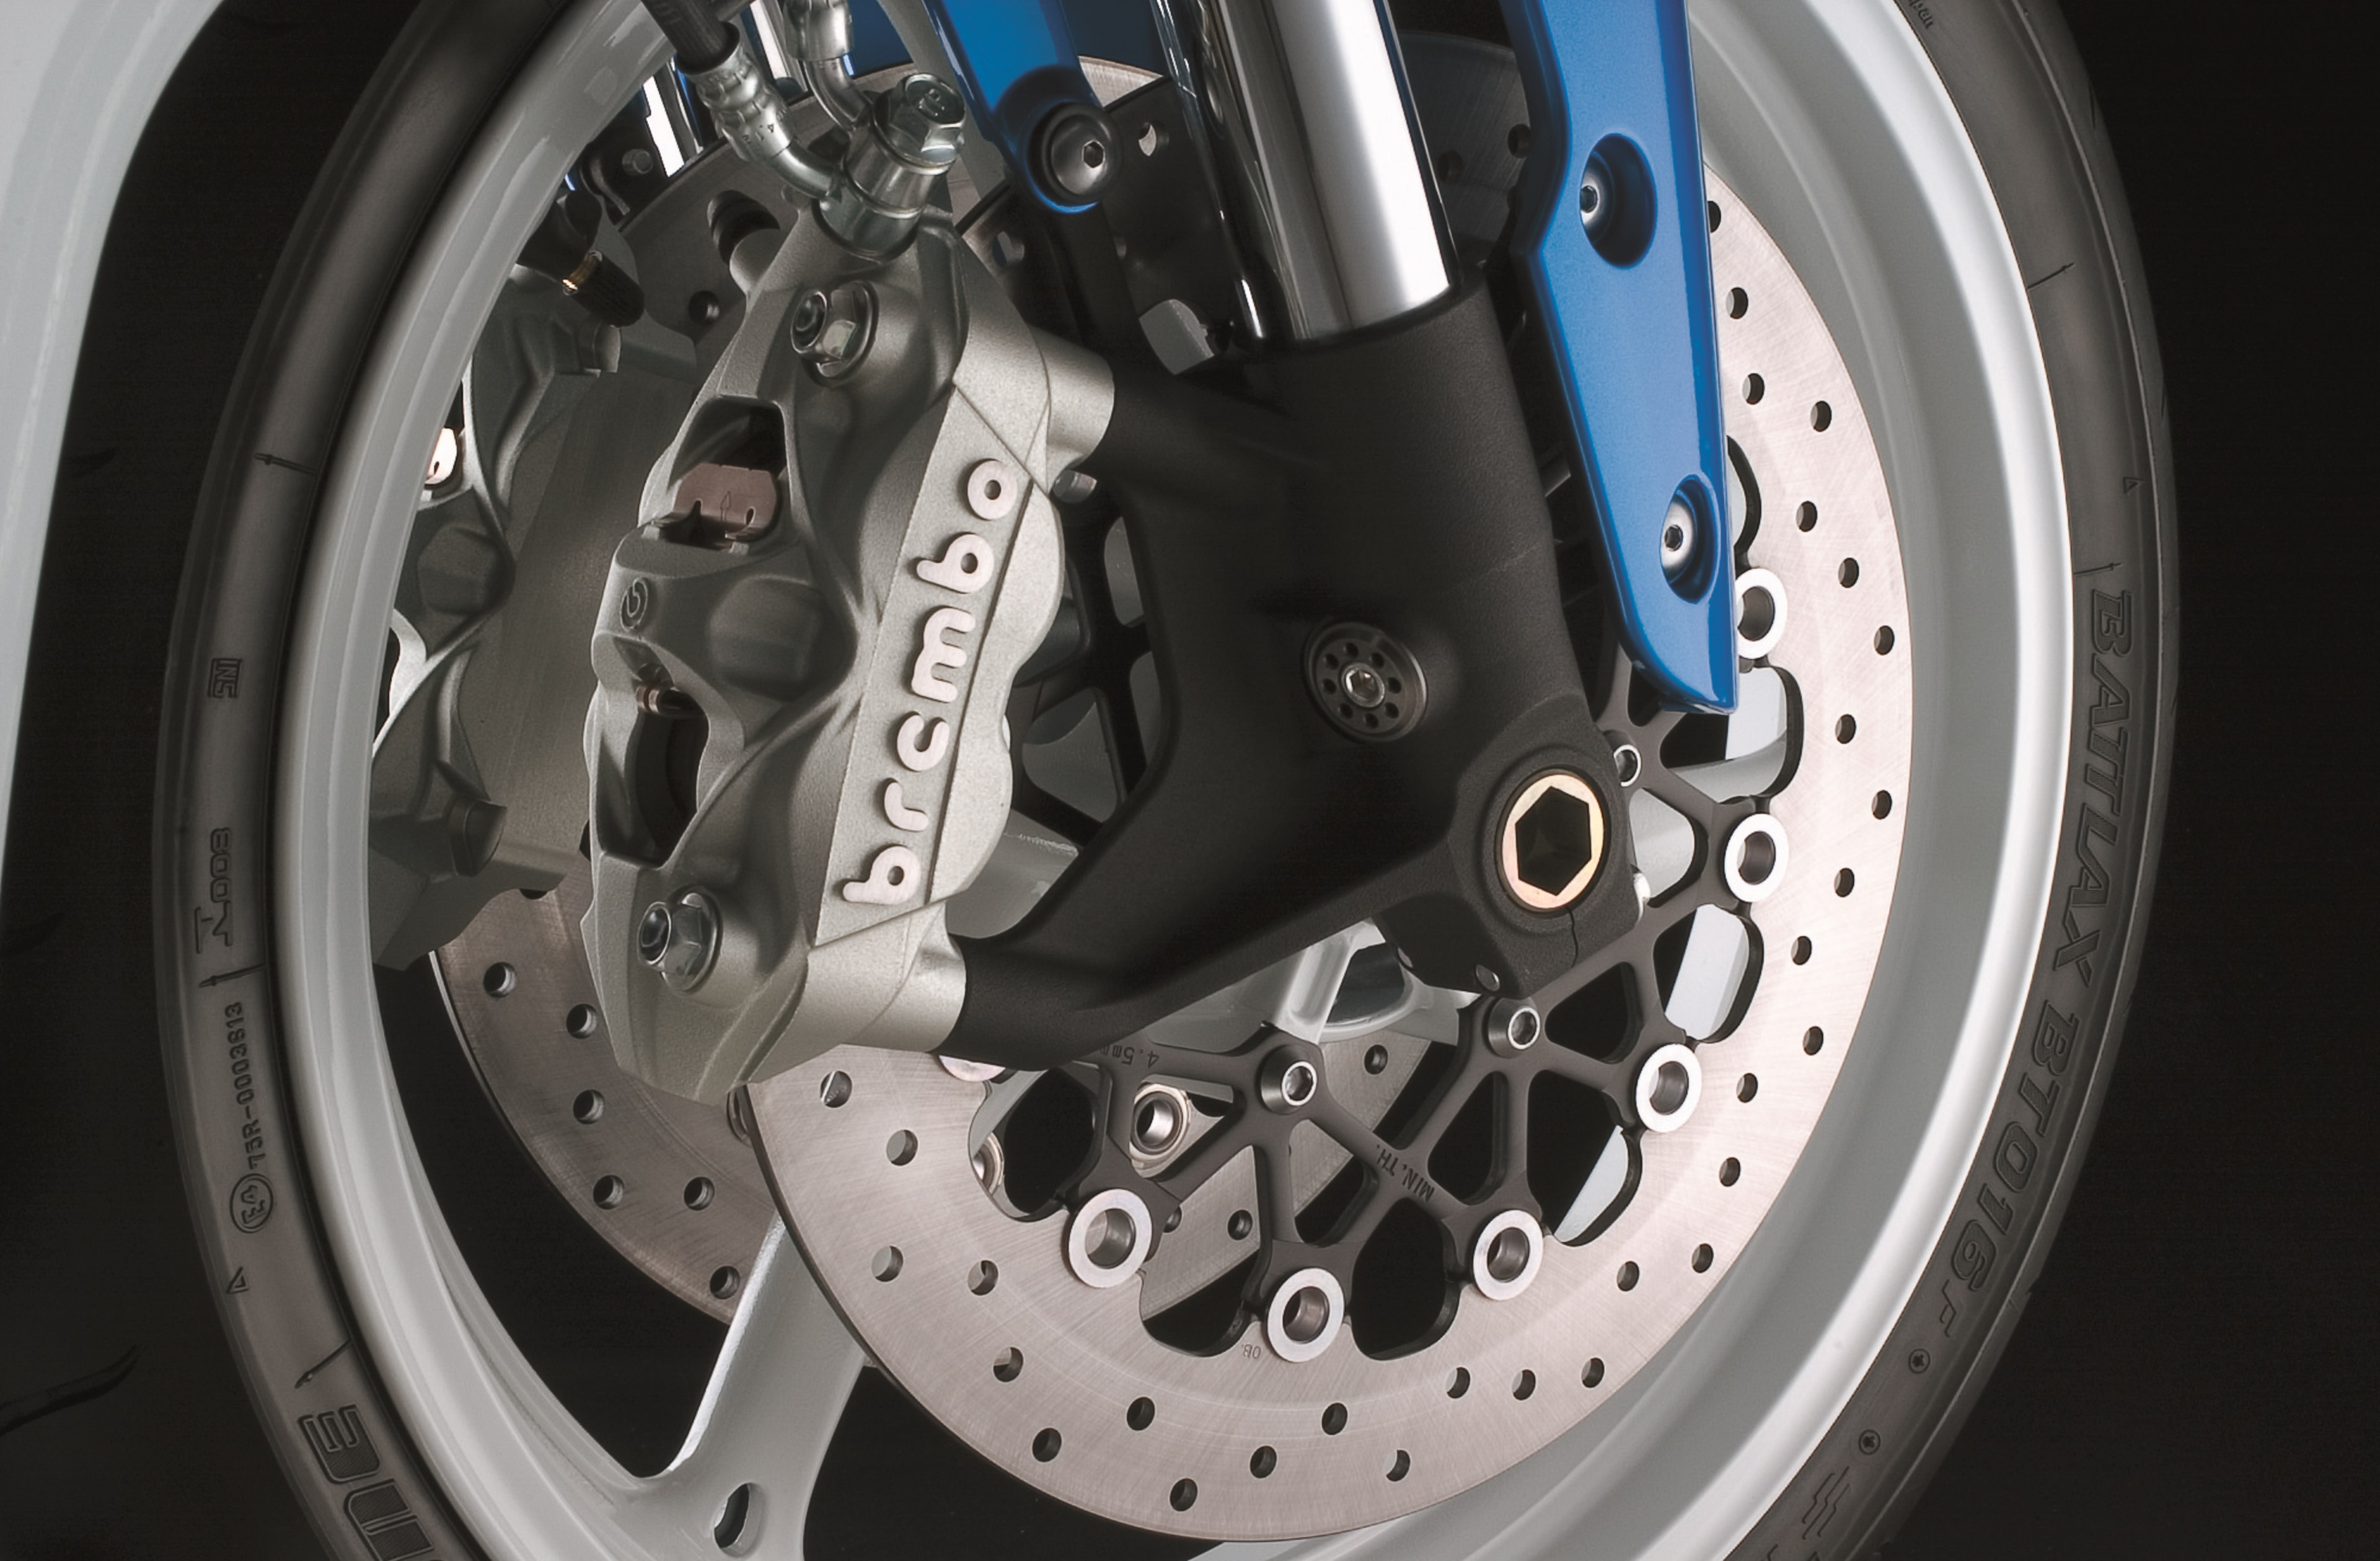 For Sale: Suzuki GSX-R600 • The Bike Market